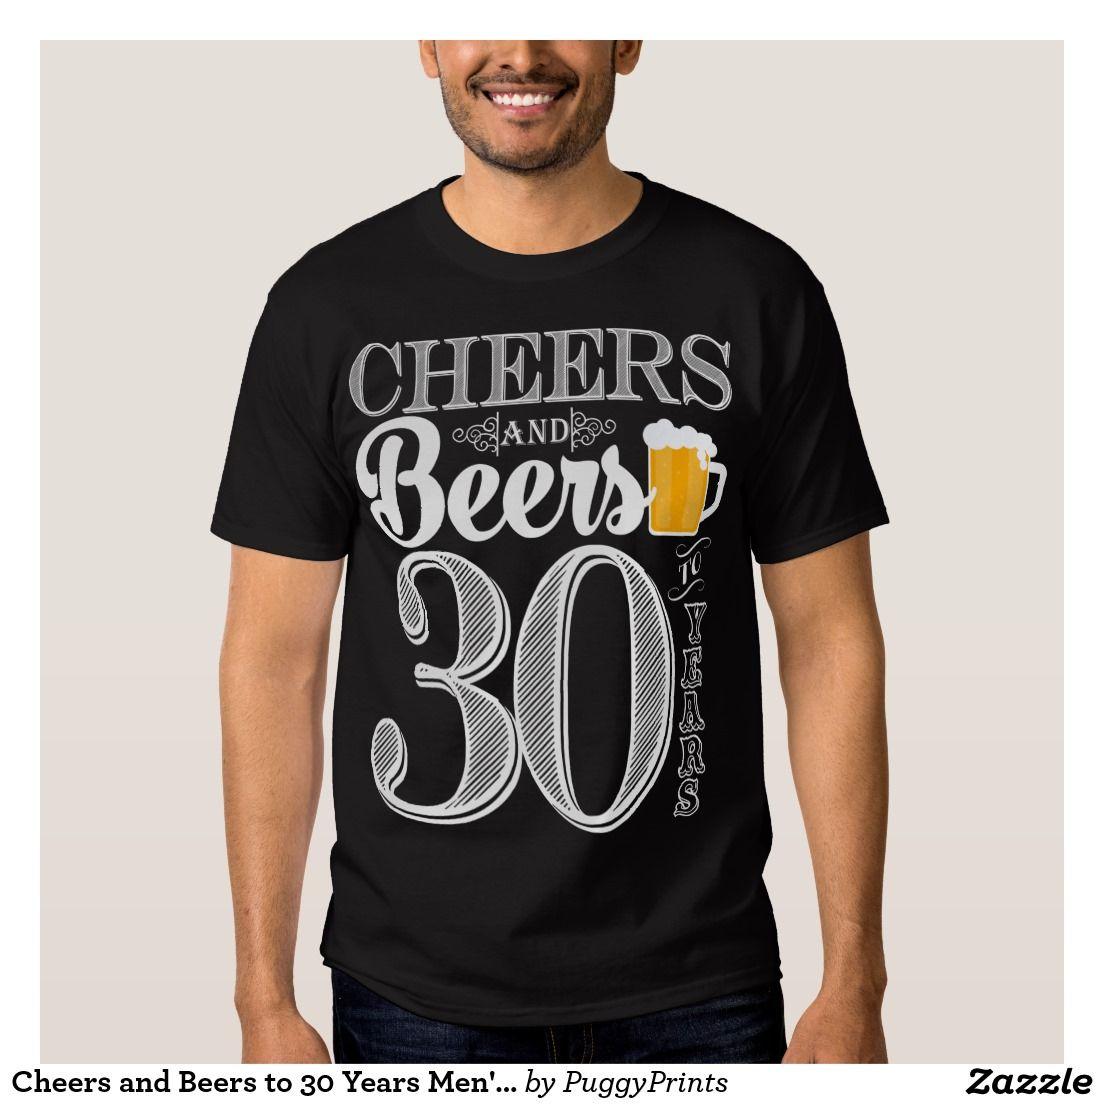 9997b3ce9 Cheers and Beers to 30 Years Men's T-Shirt | Zazzle.com in 2019 ...